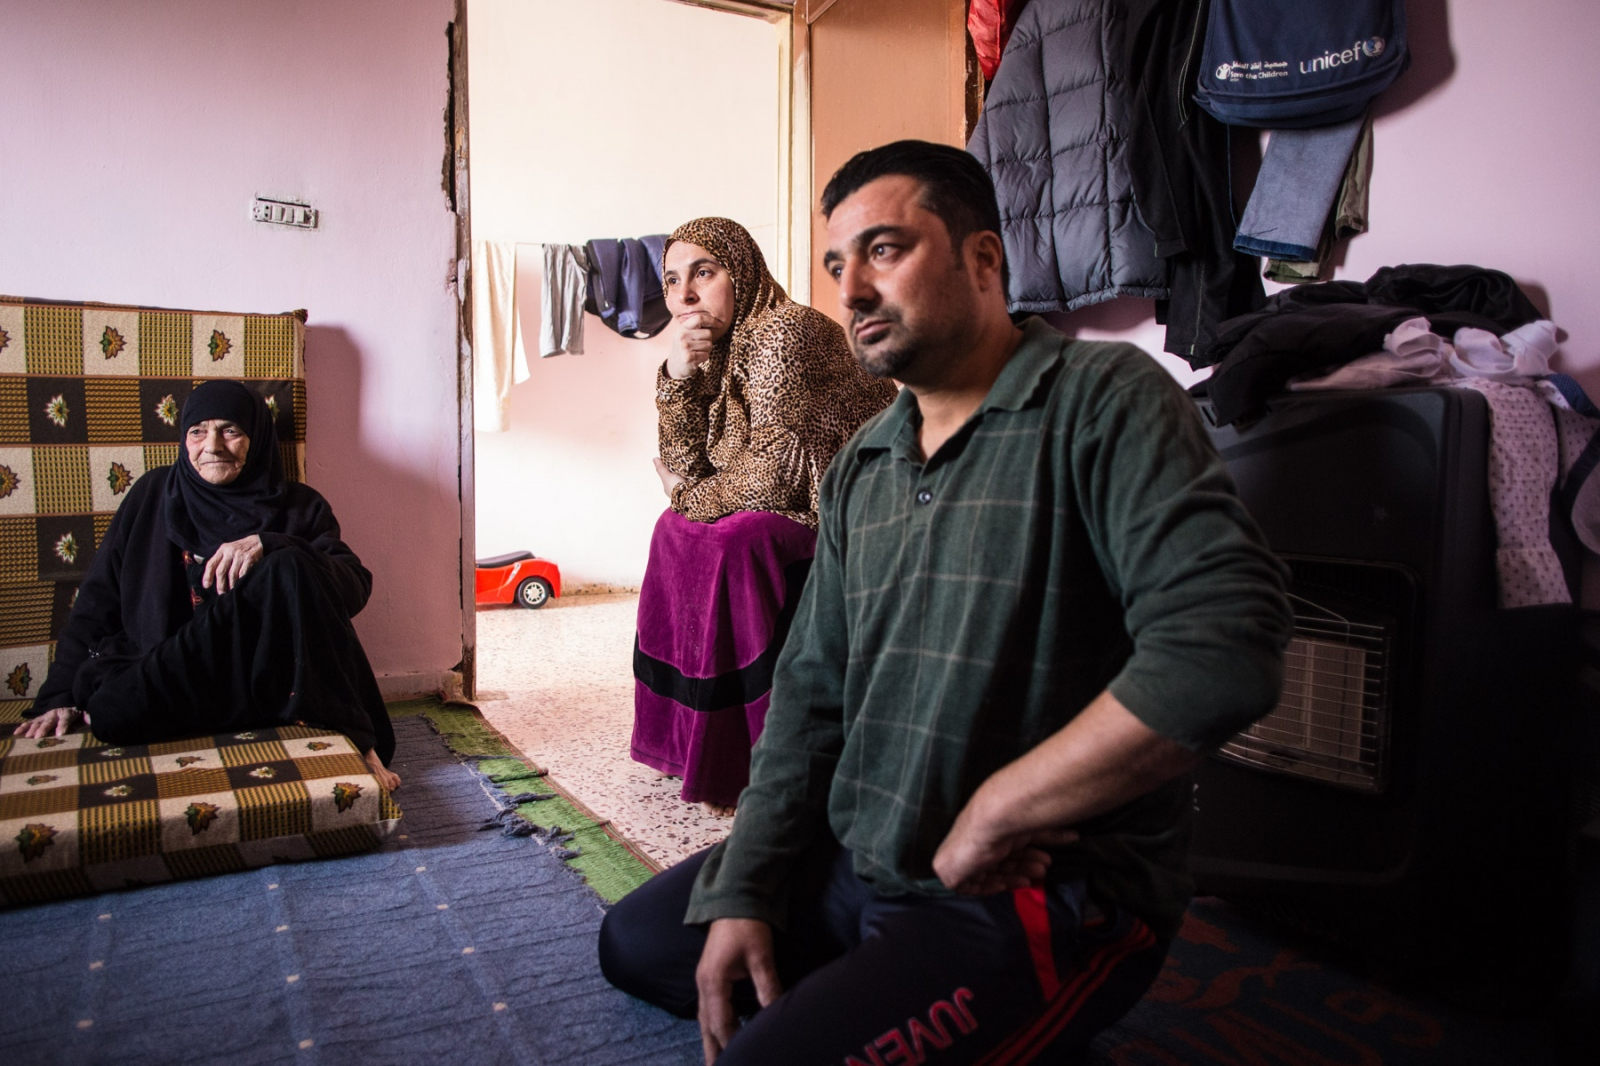 Ahmed Jansis, 41, sits with his wife Um Mohammed, mother, and son Hamzah at home in Mafraq, Jordan, on Nov. 4, 2016. The family came from Aleppo, where Um Mohammed worked as an English teacher, and now both parents do odd jobs to earn a basic income for the family.